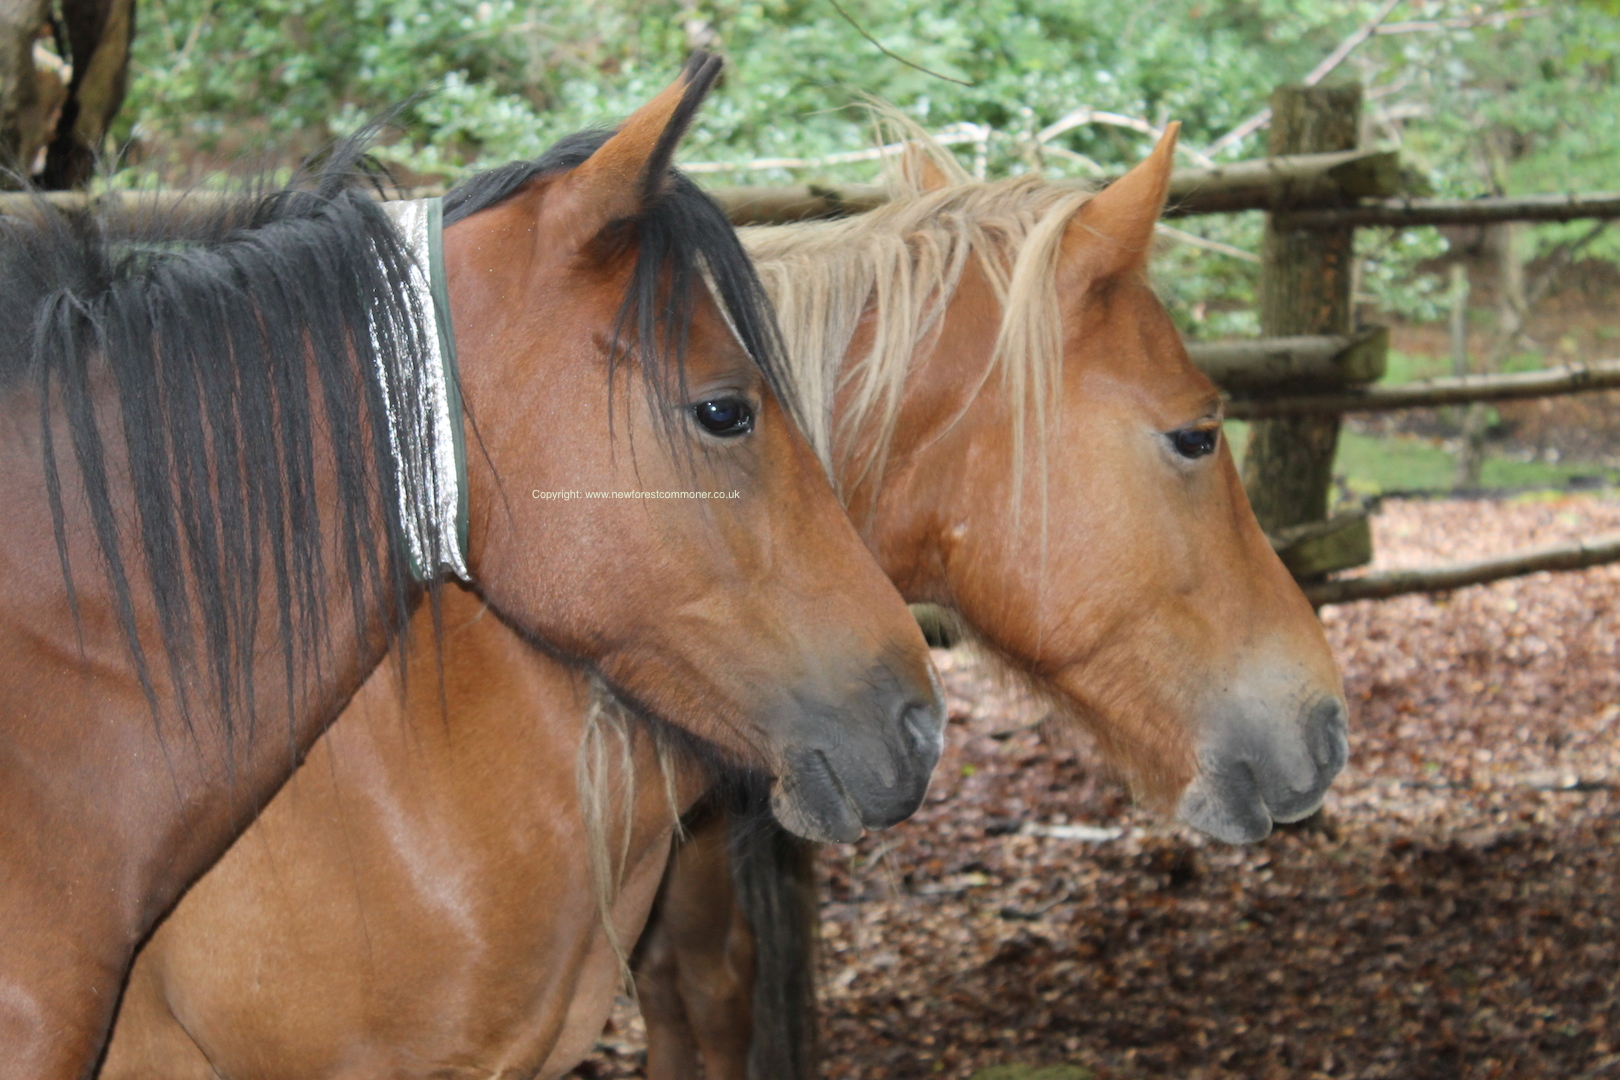 The high-viz reflective collars enable the ponies to be visible at night.